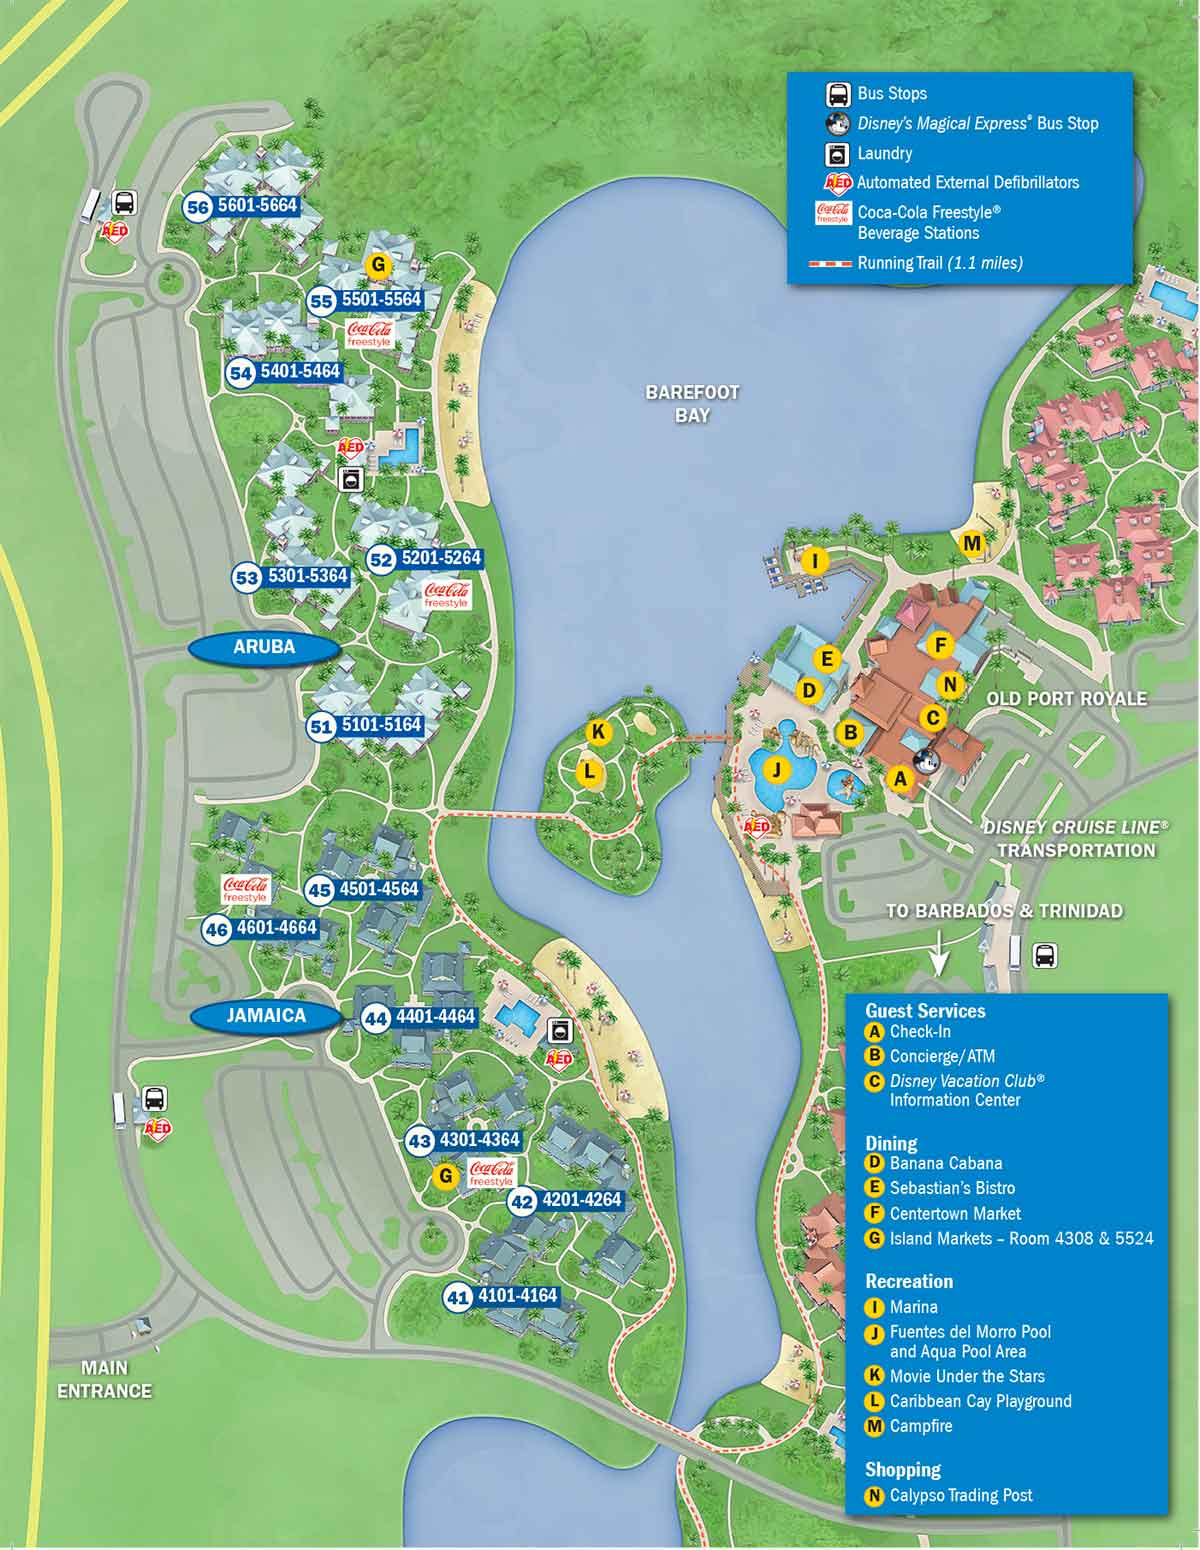 Disneys Caribbean Beach Resort Map Wdwinfocom - Map of the carribean